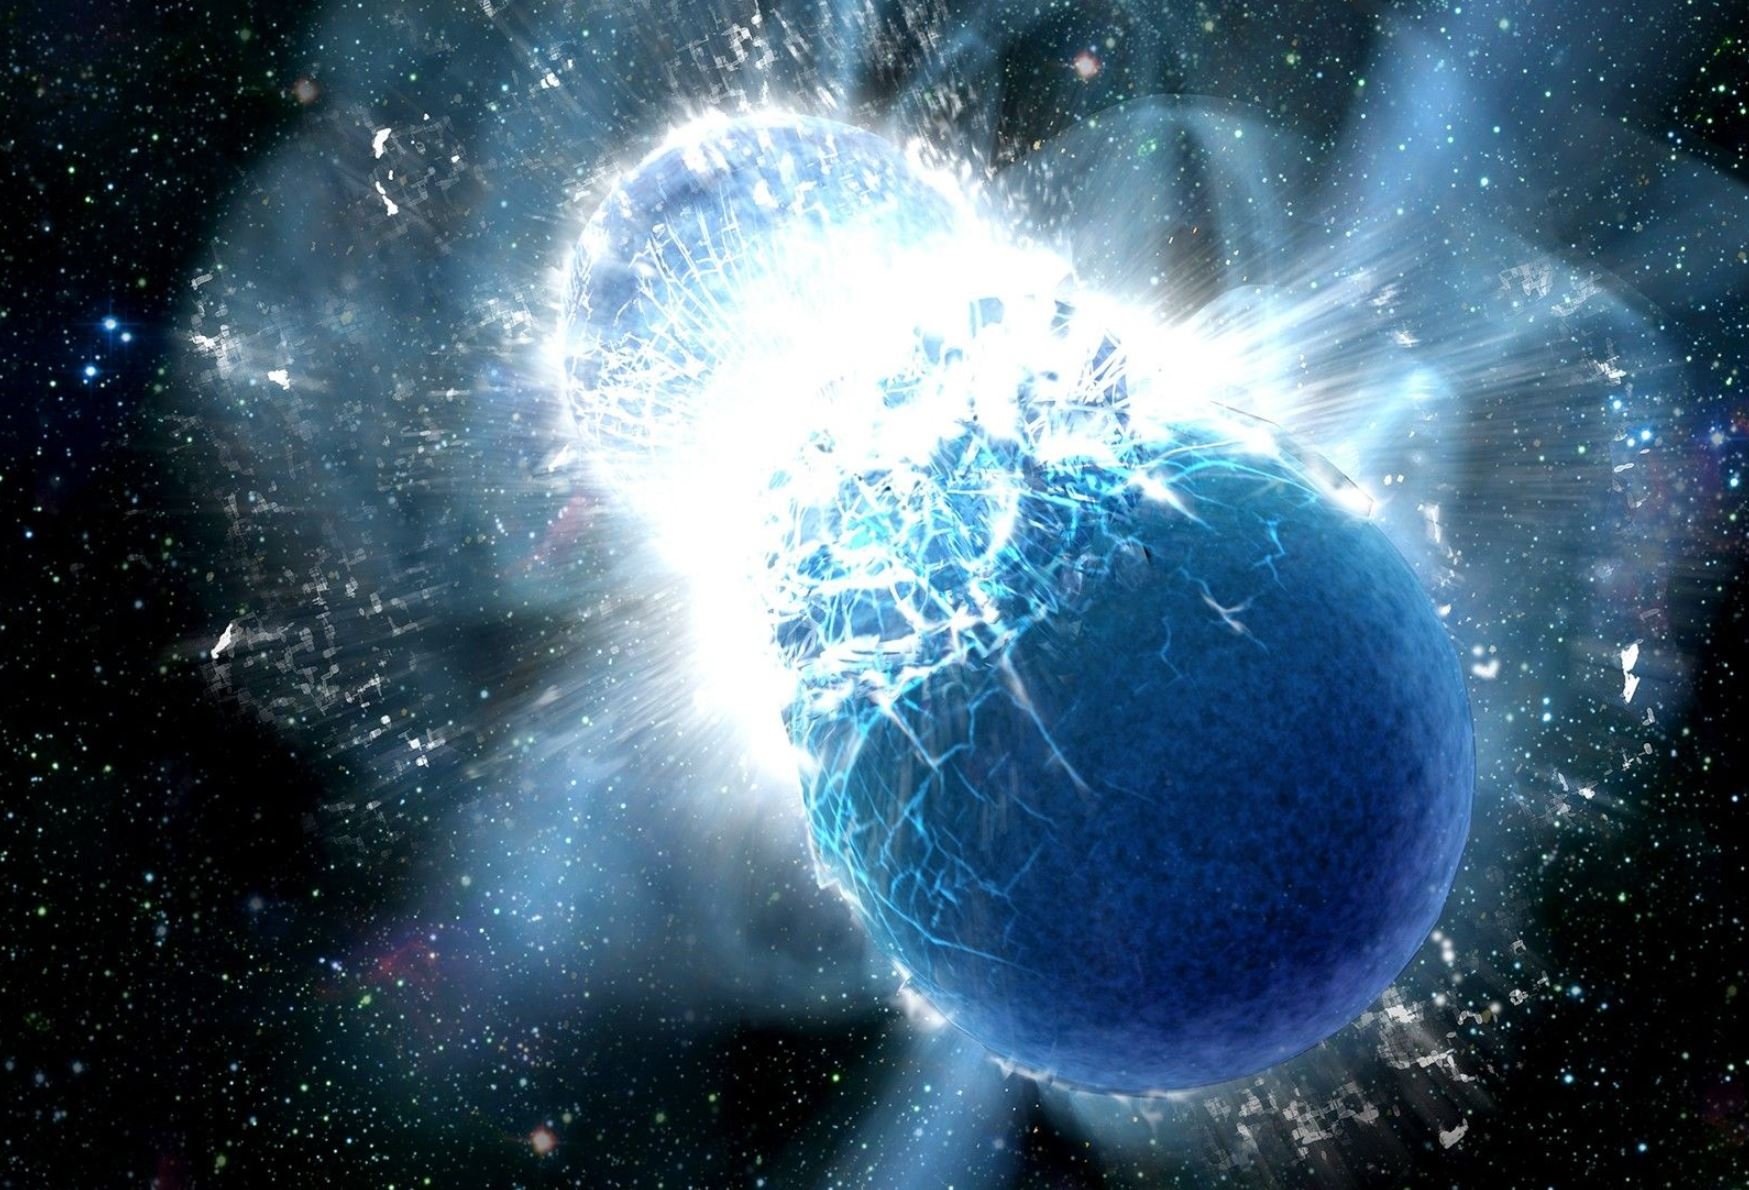 Artist's depiction of a neutron star collision after inwards spiral. - Image Credit: (Credit: NASA/Swift/Dana Berry)